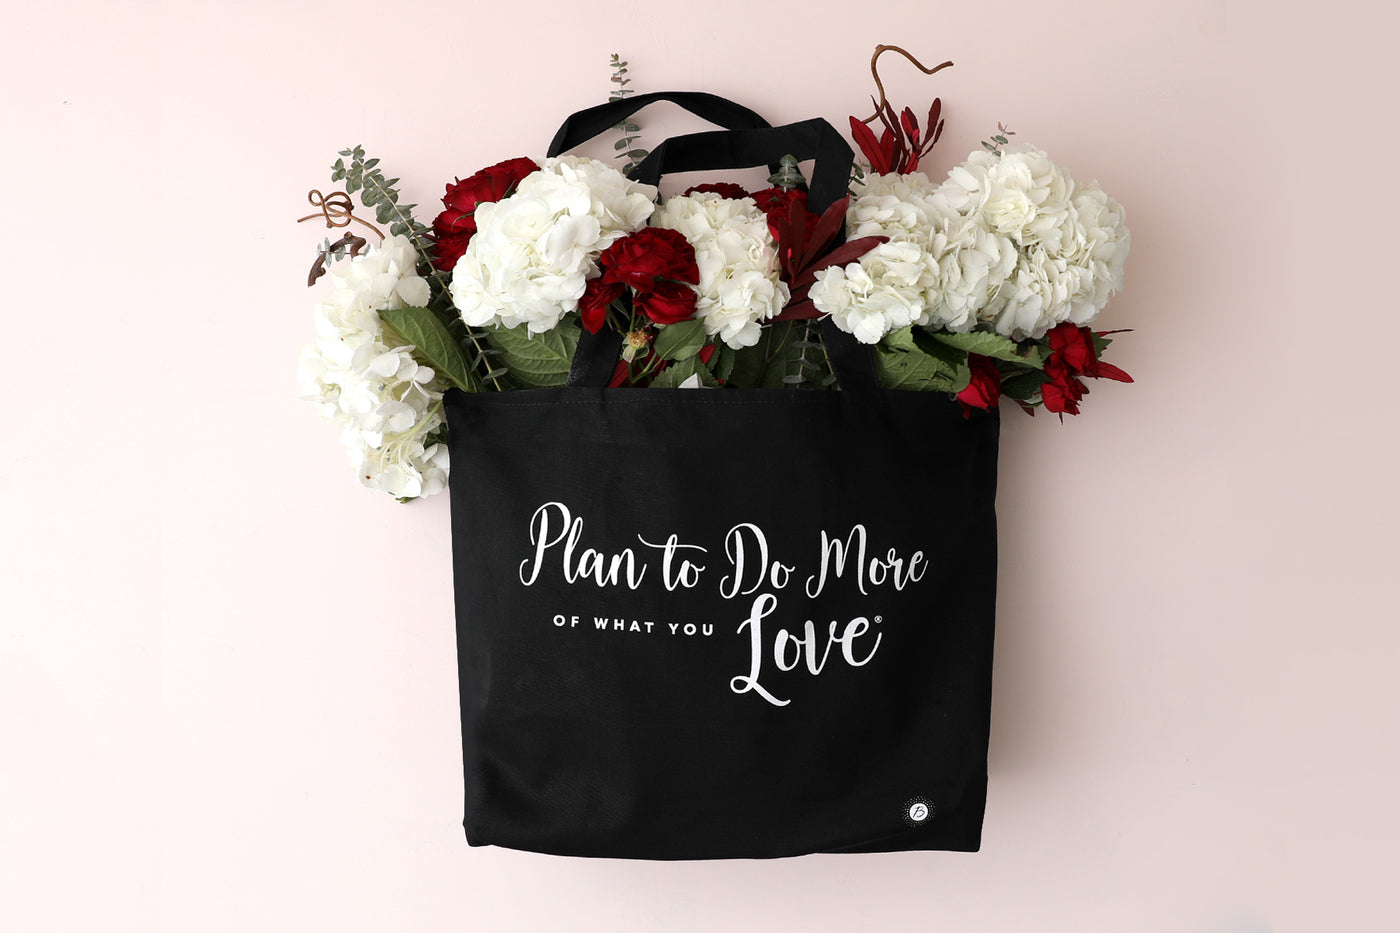 More of What You Love Black Canvas Tote Bag